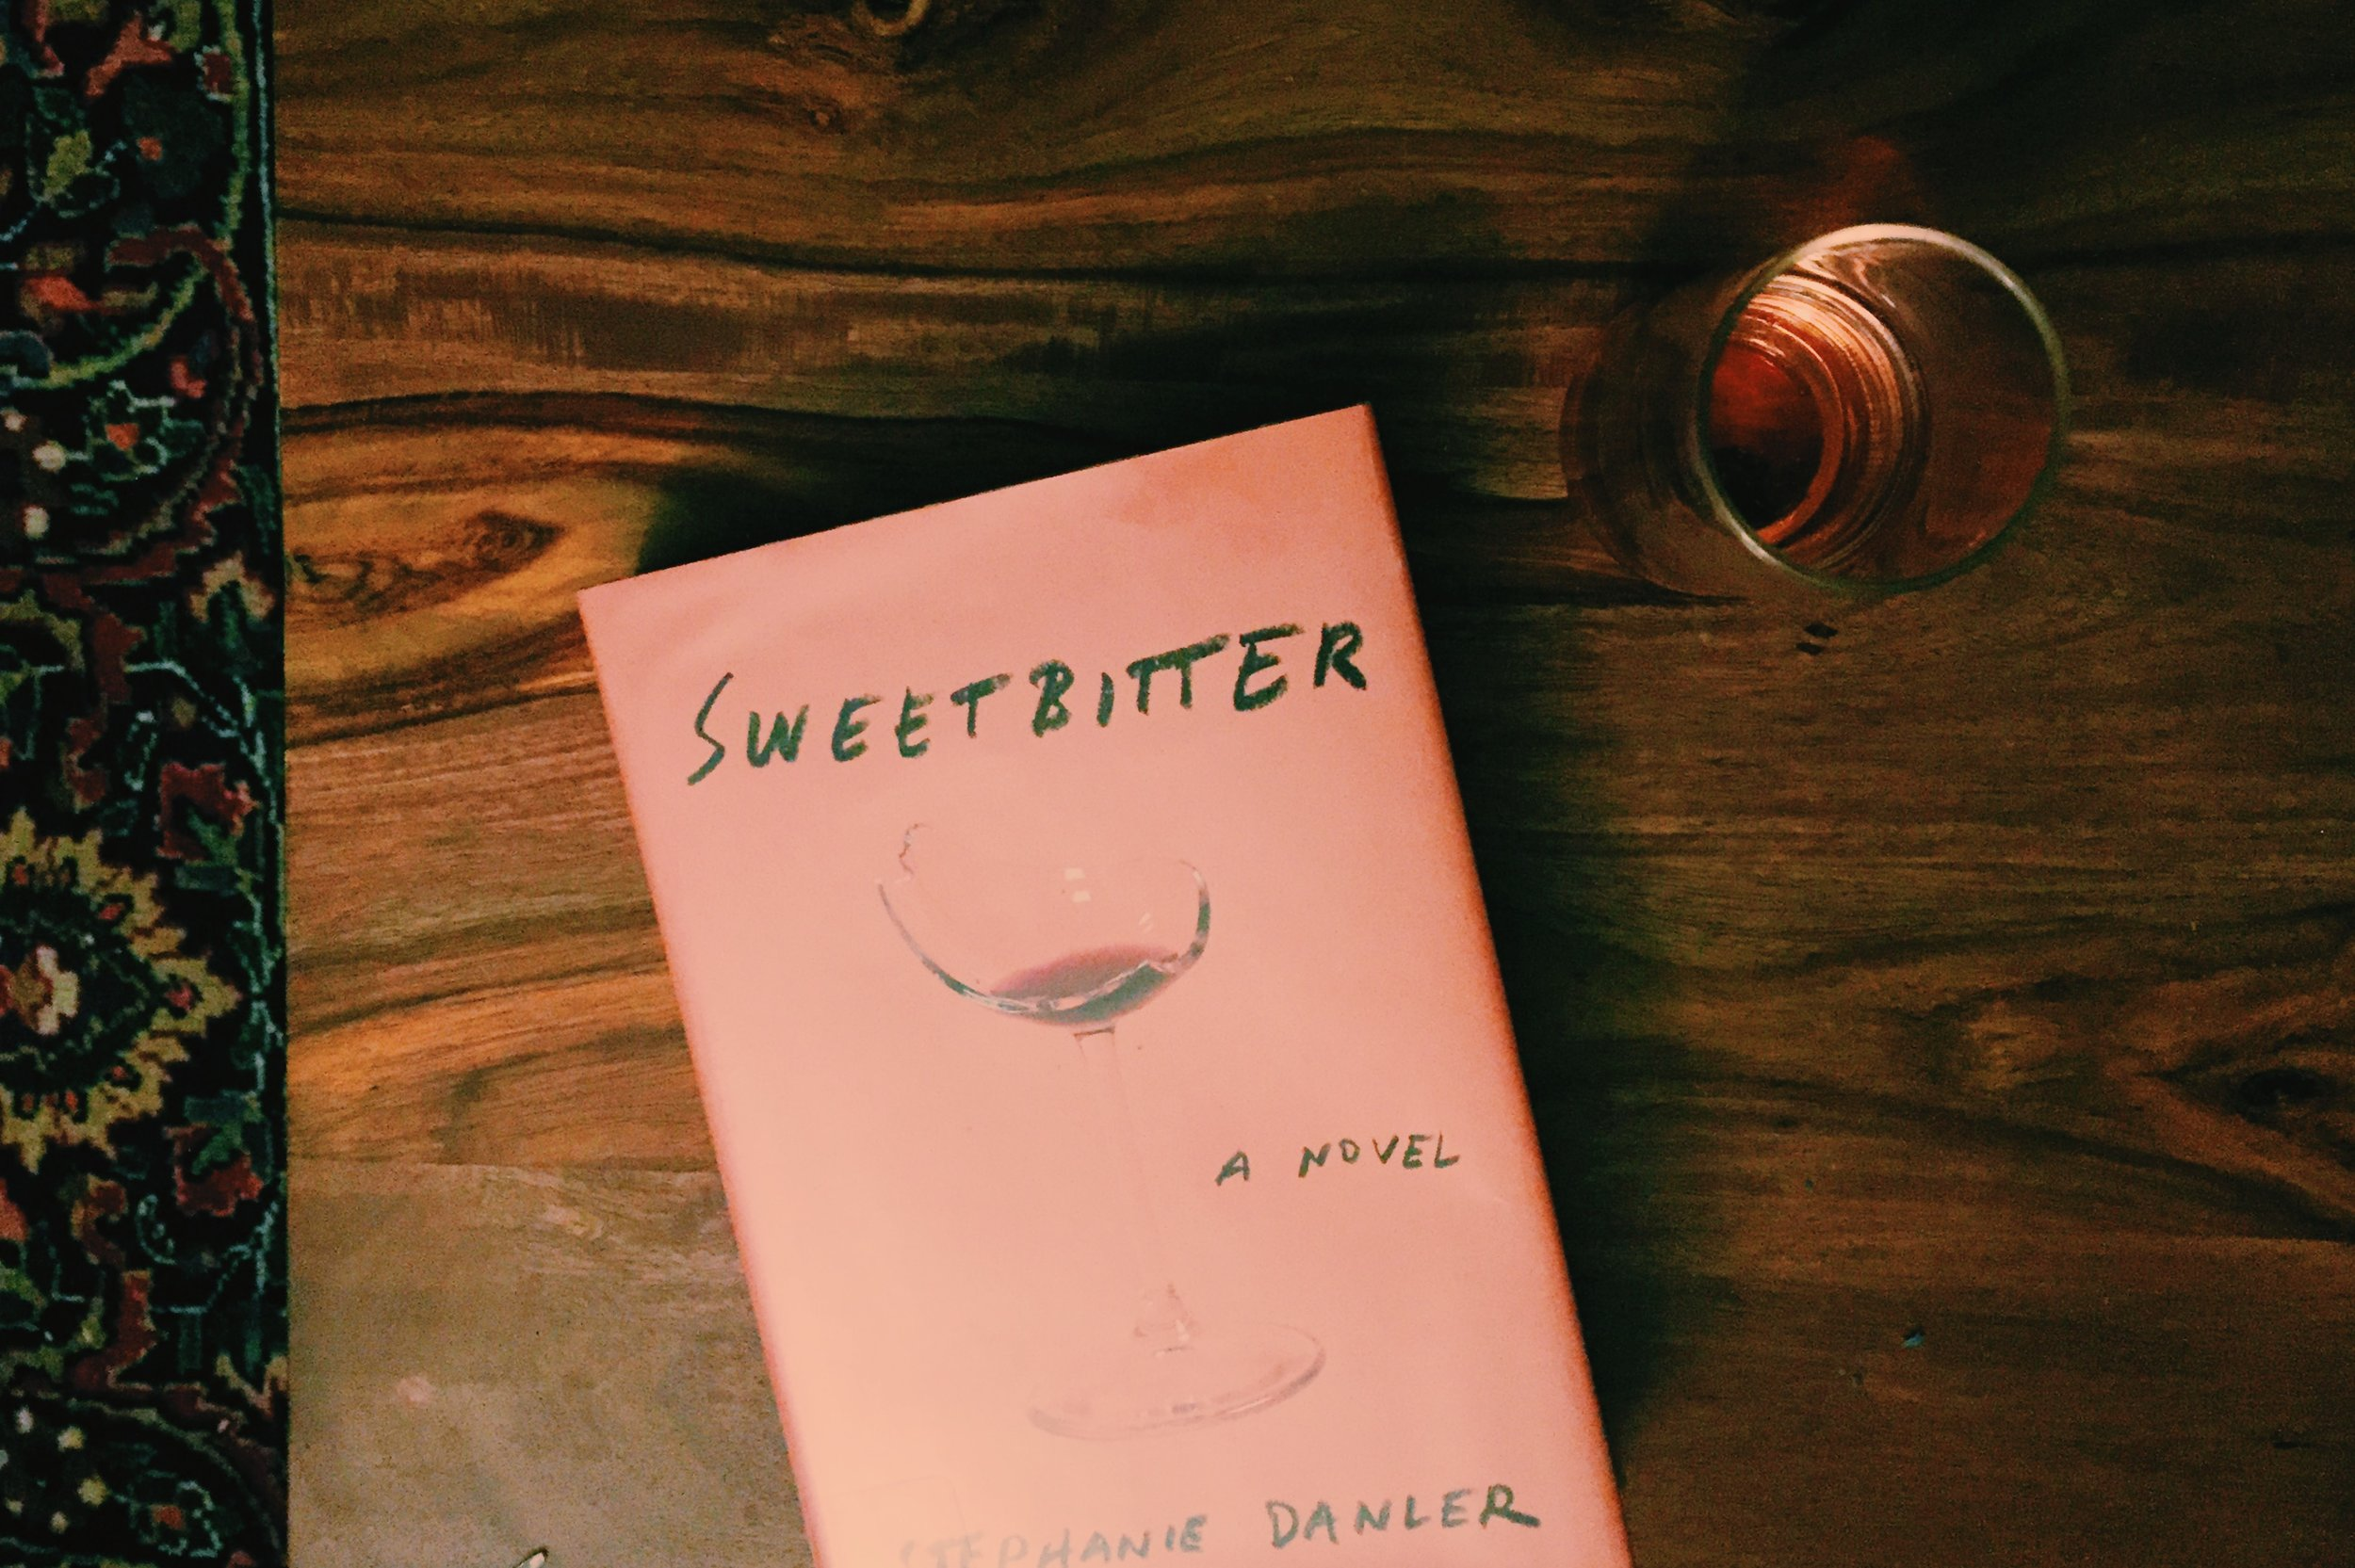 sweetbitter-book.JPG